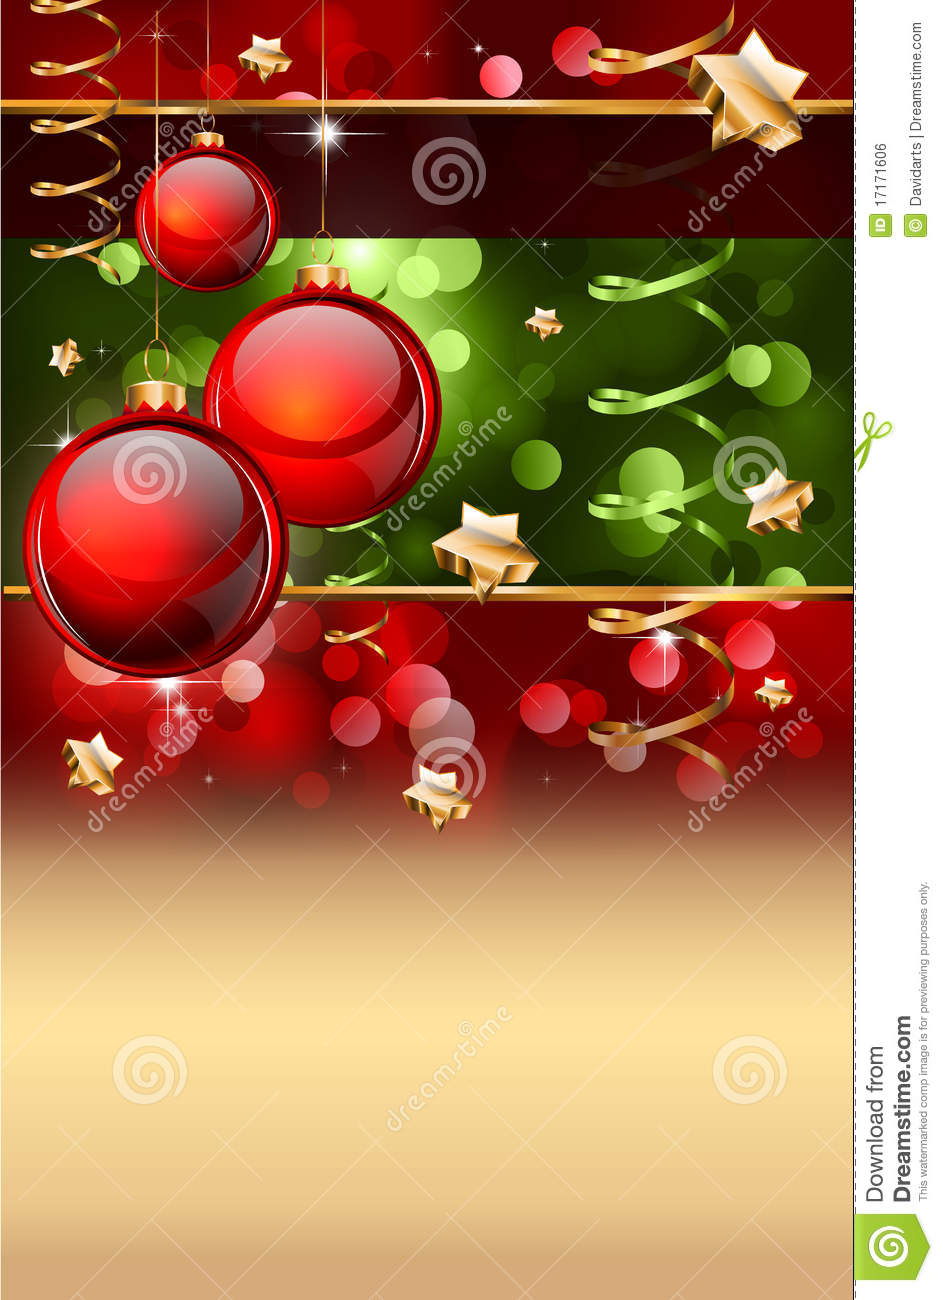 Christmas Elegant Background For Flyers Or Posters Royalty Free Stock Image Image 17171606